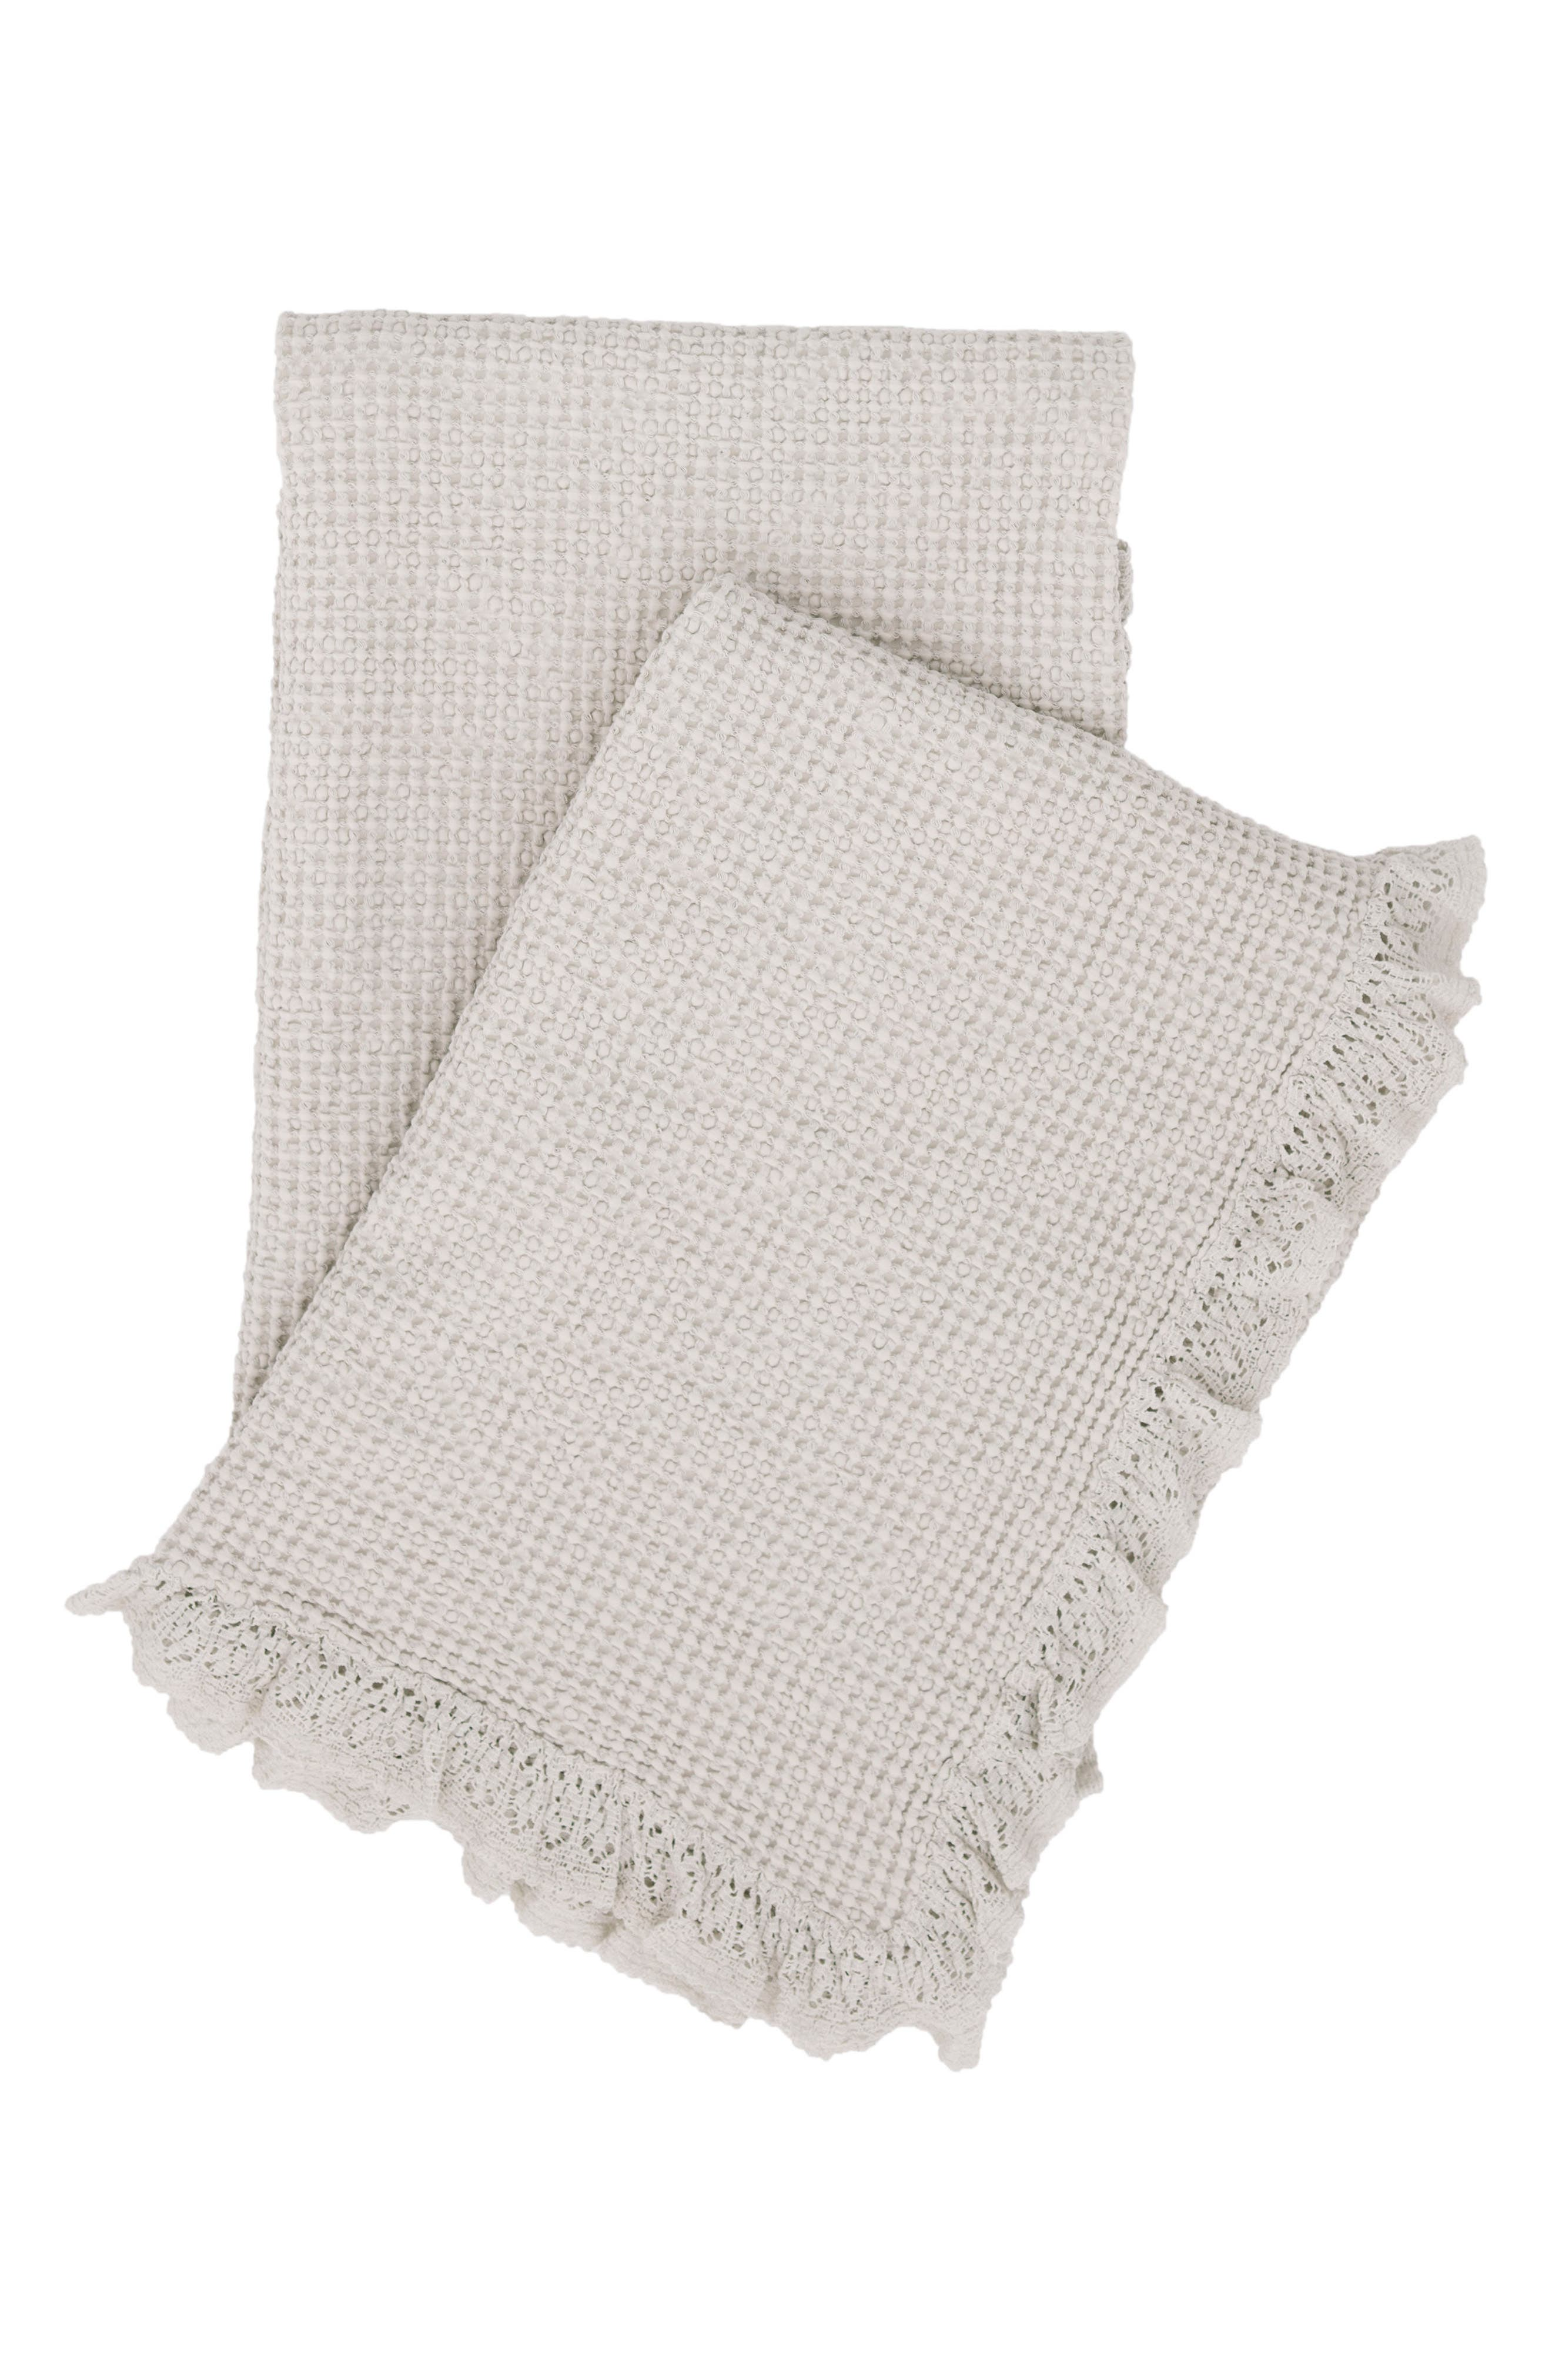 Lace Ruffle Throw,                         Main,                         color, Grey